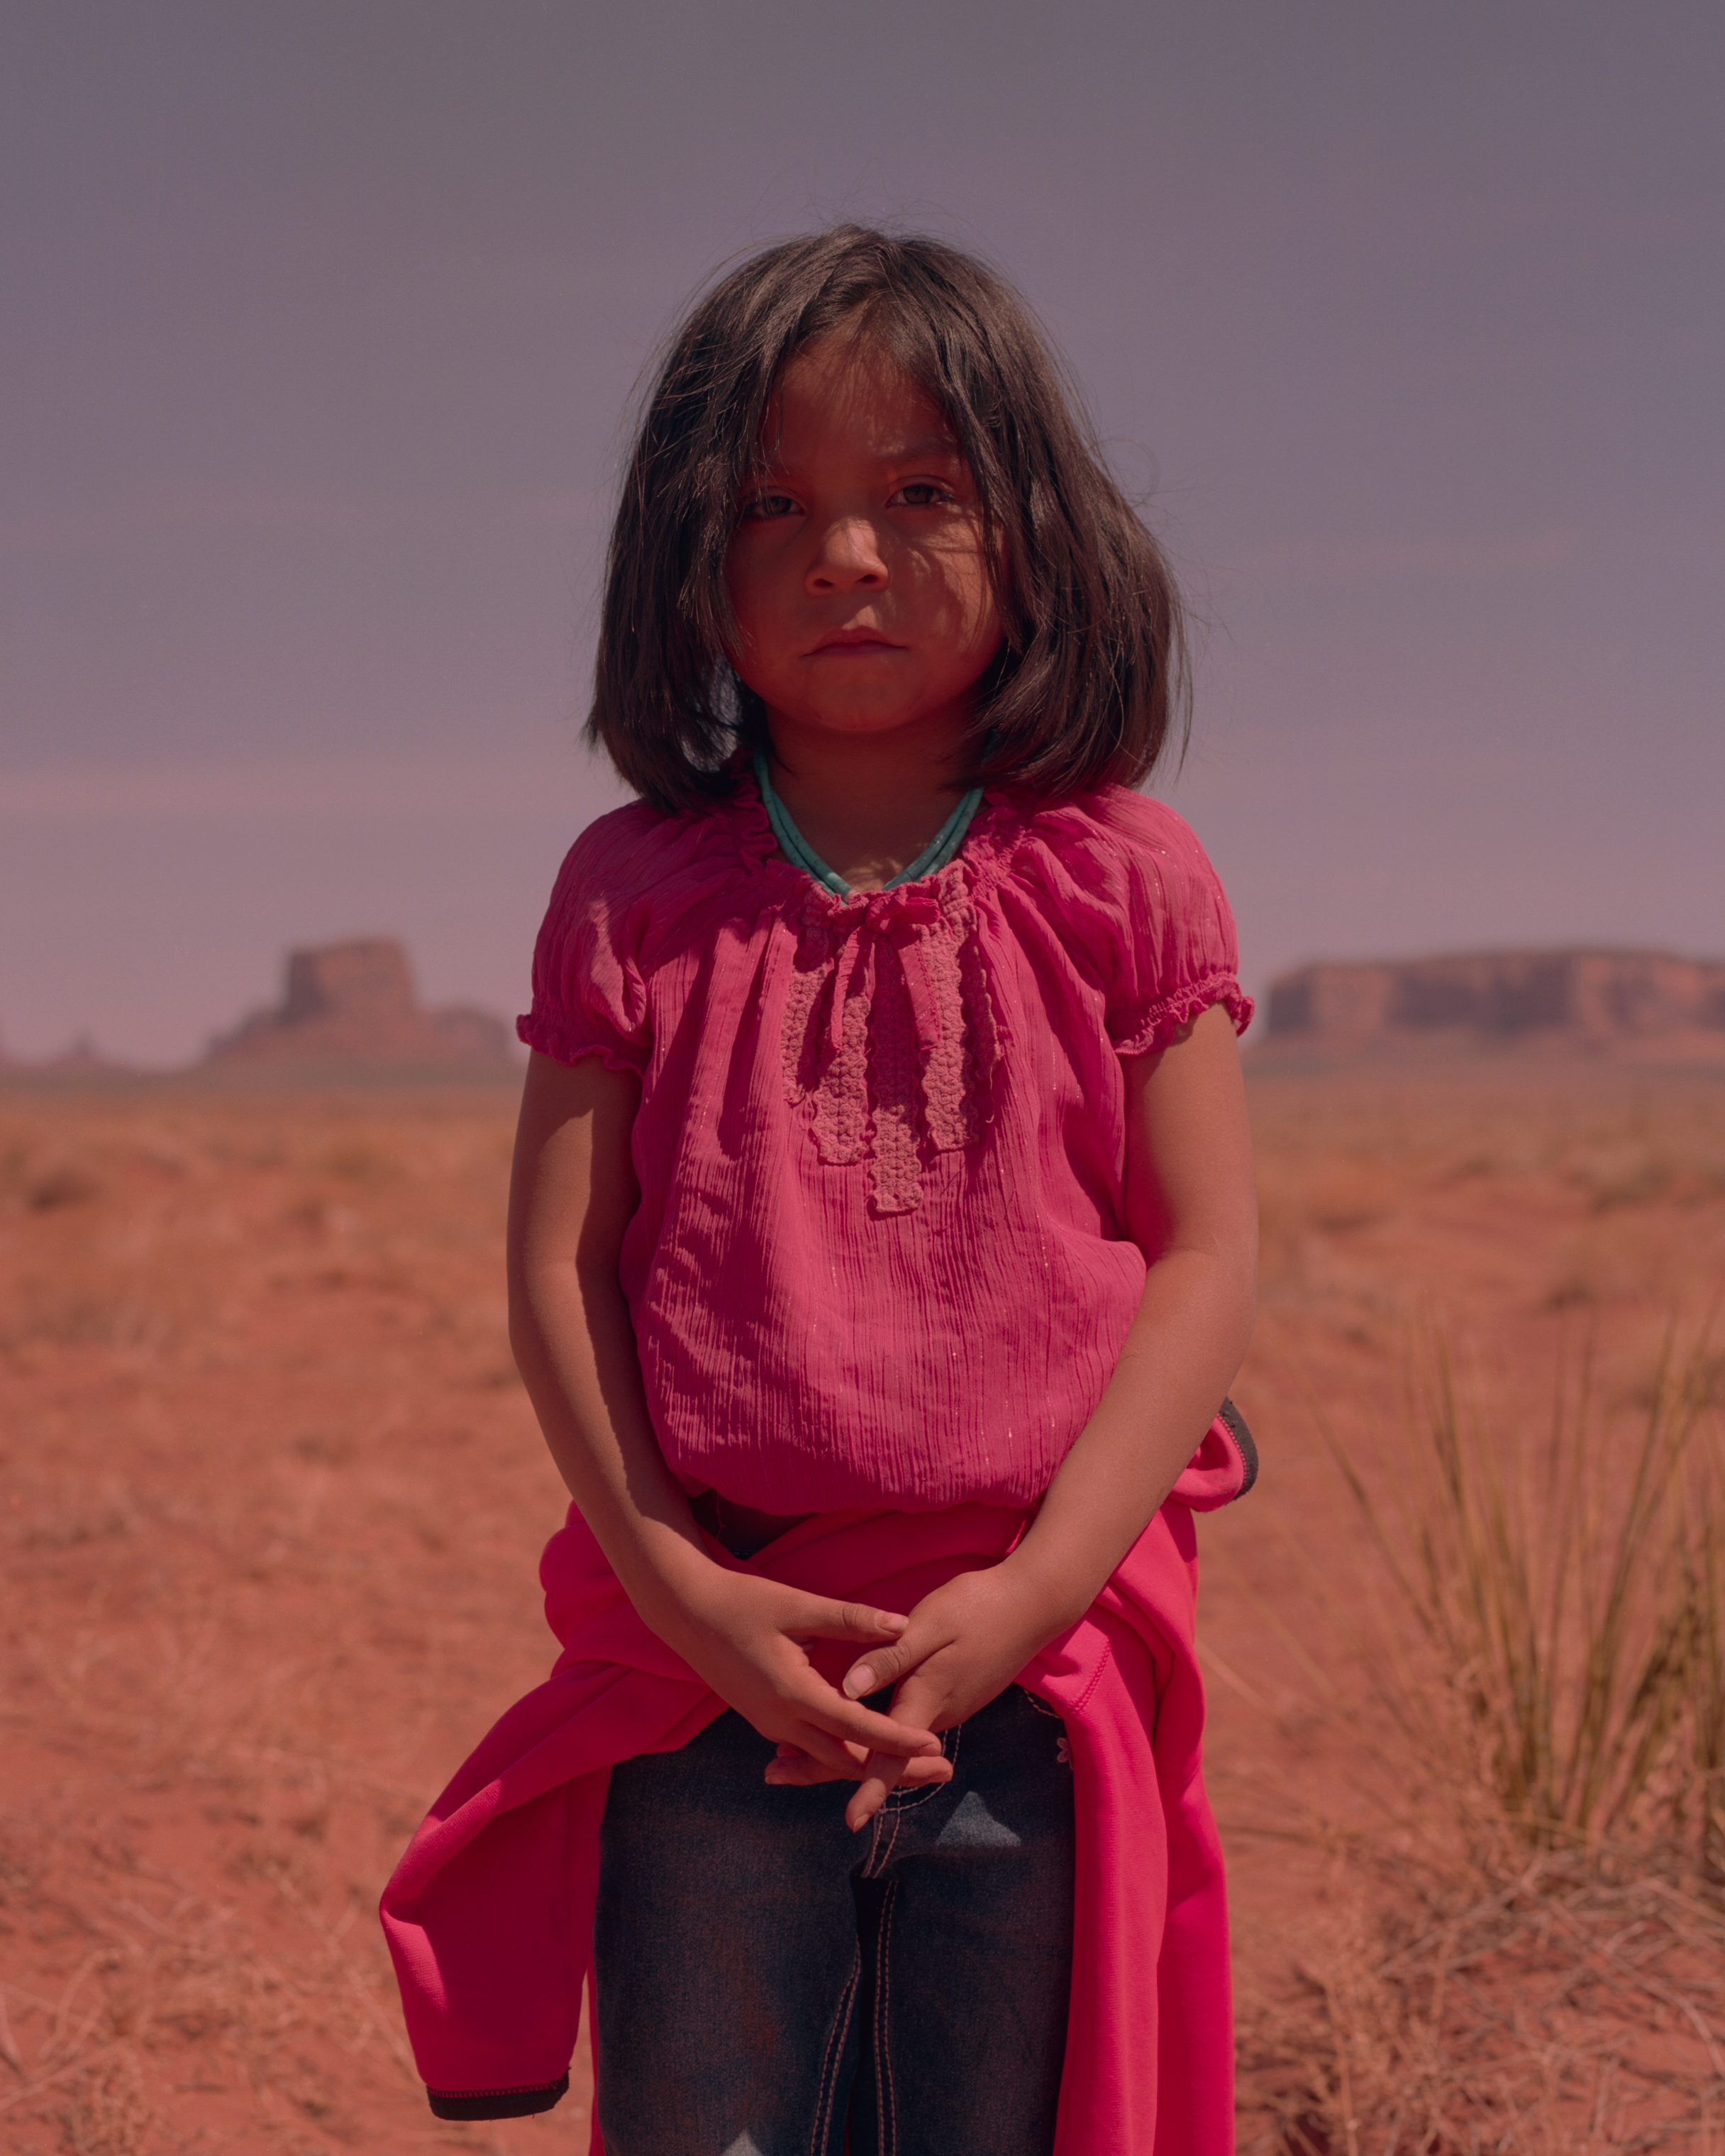 Alicia Sayetsitty, 5, in Monument Valley. Her stepmother Crystal, along with her two siblings, Yanabah and LJ, work most days selling handmade jewelry and native crafts at a roadside stand.